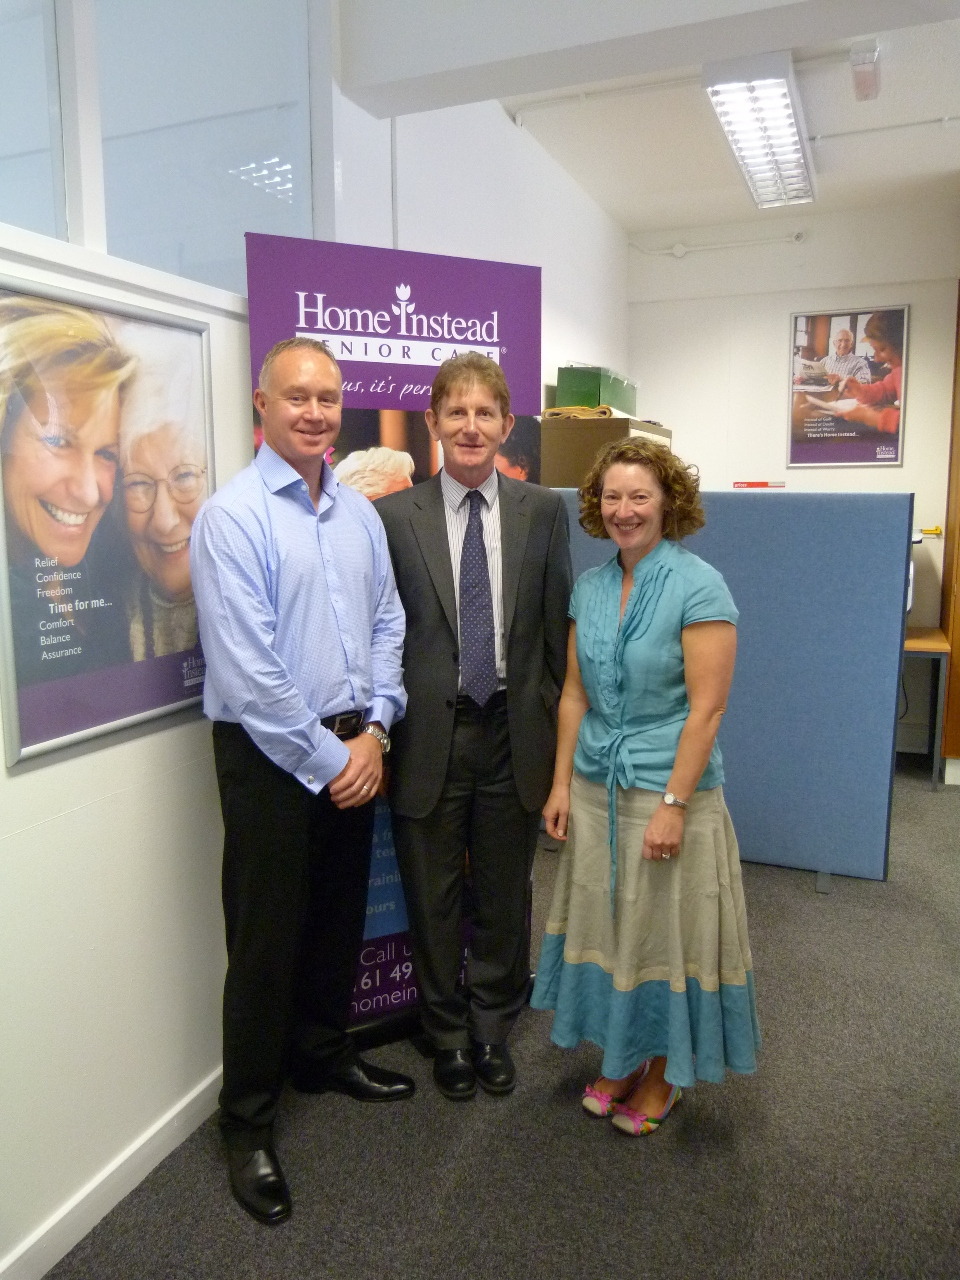 Robert Devereux, Permanent Secretary at the Department for Work and Pensions (DWP), being greeted by Home Instead Stockport owners David and Joanna Moore